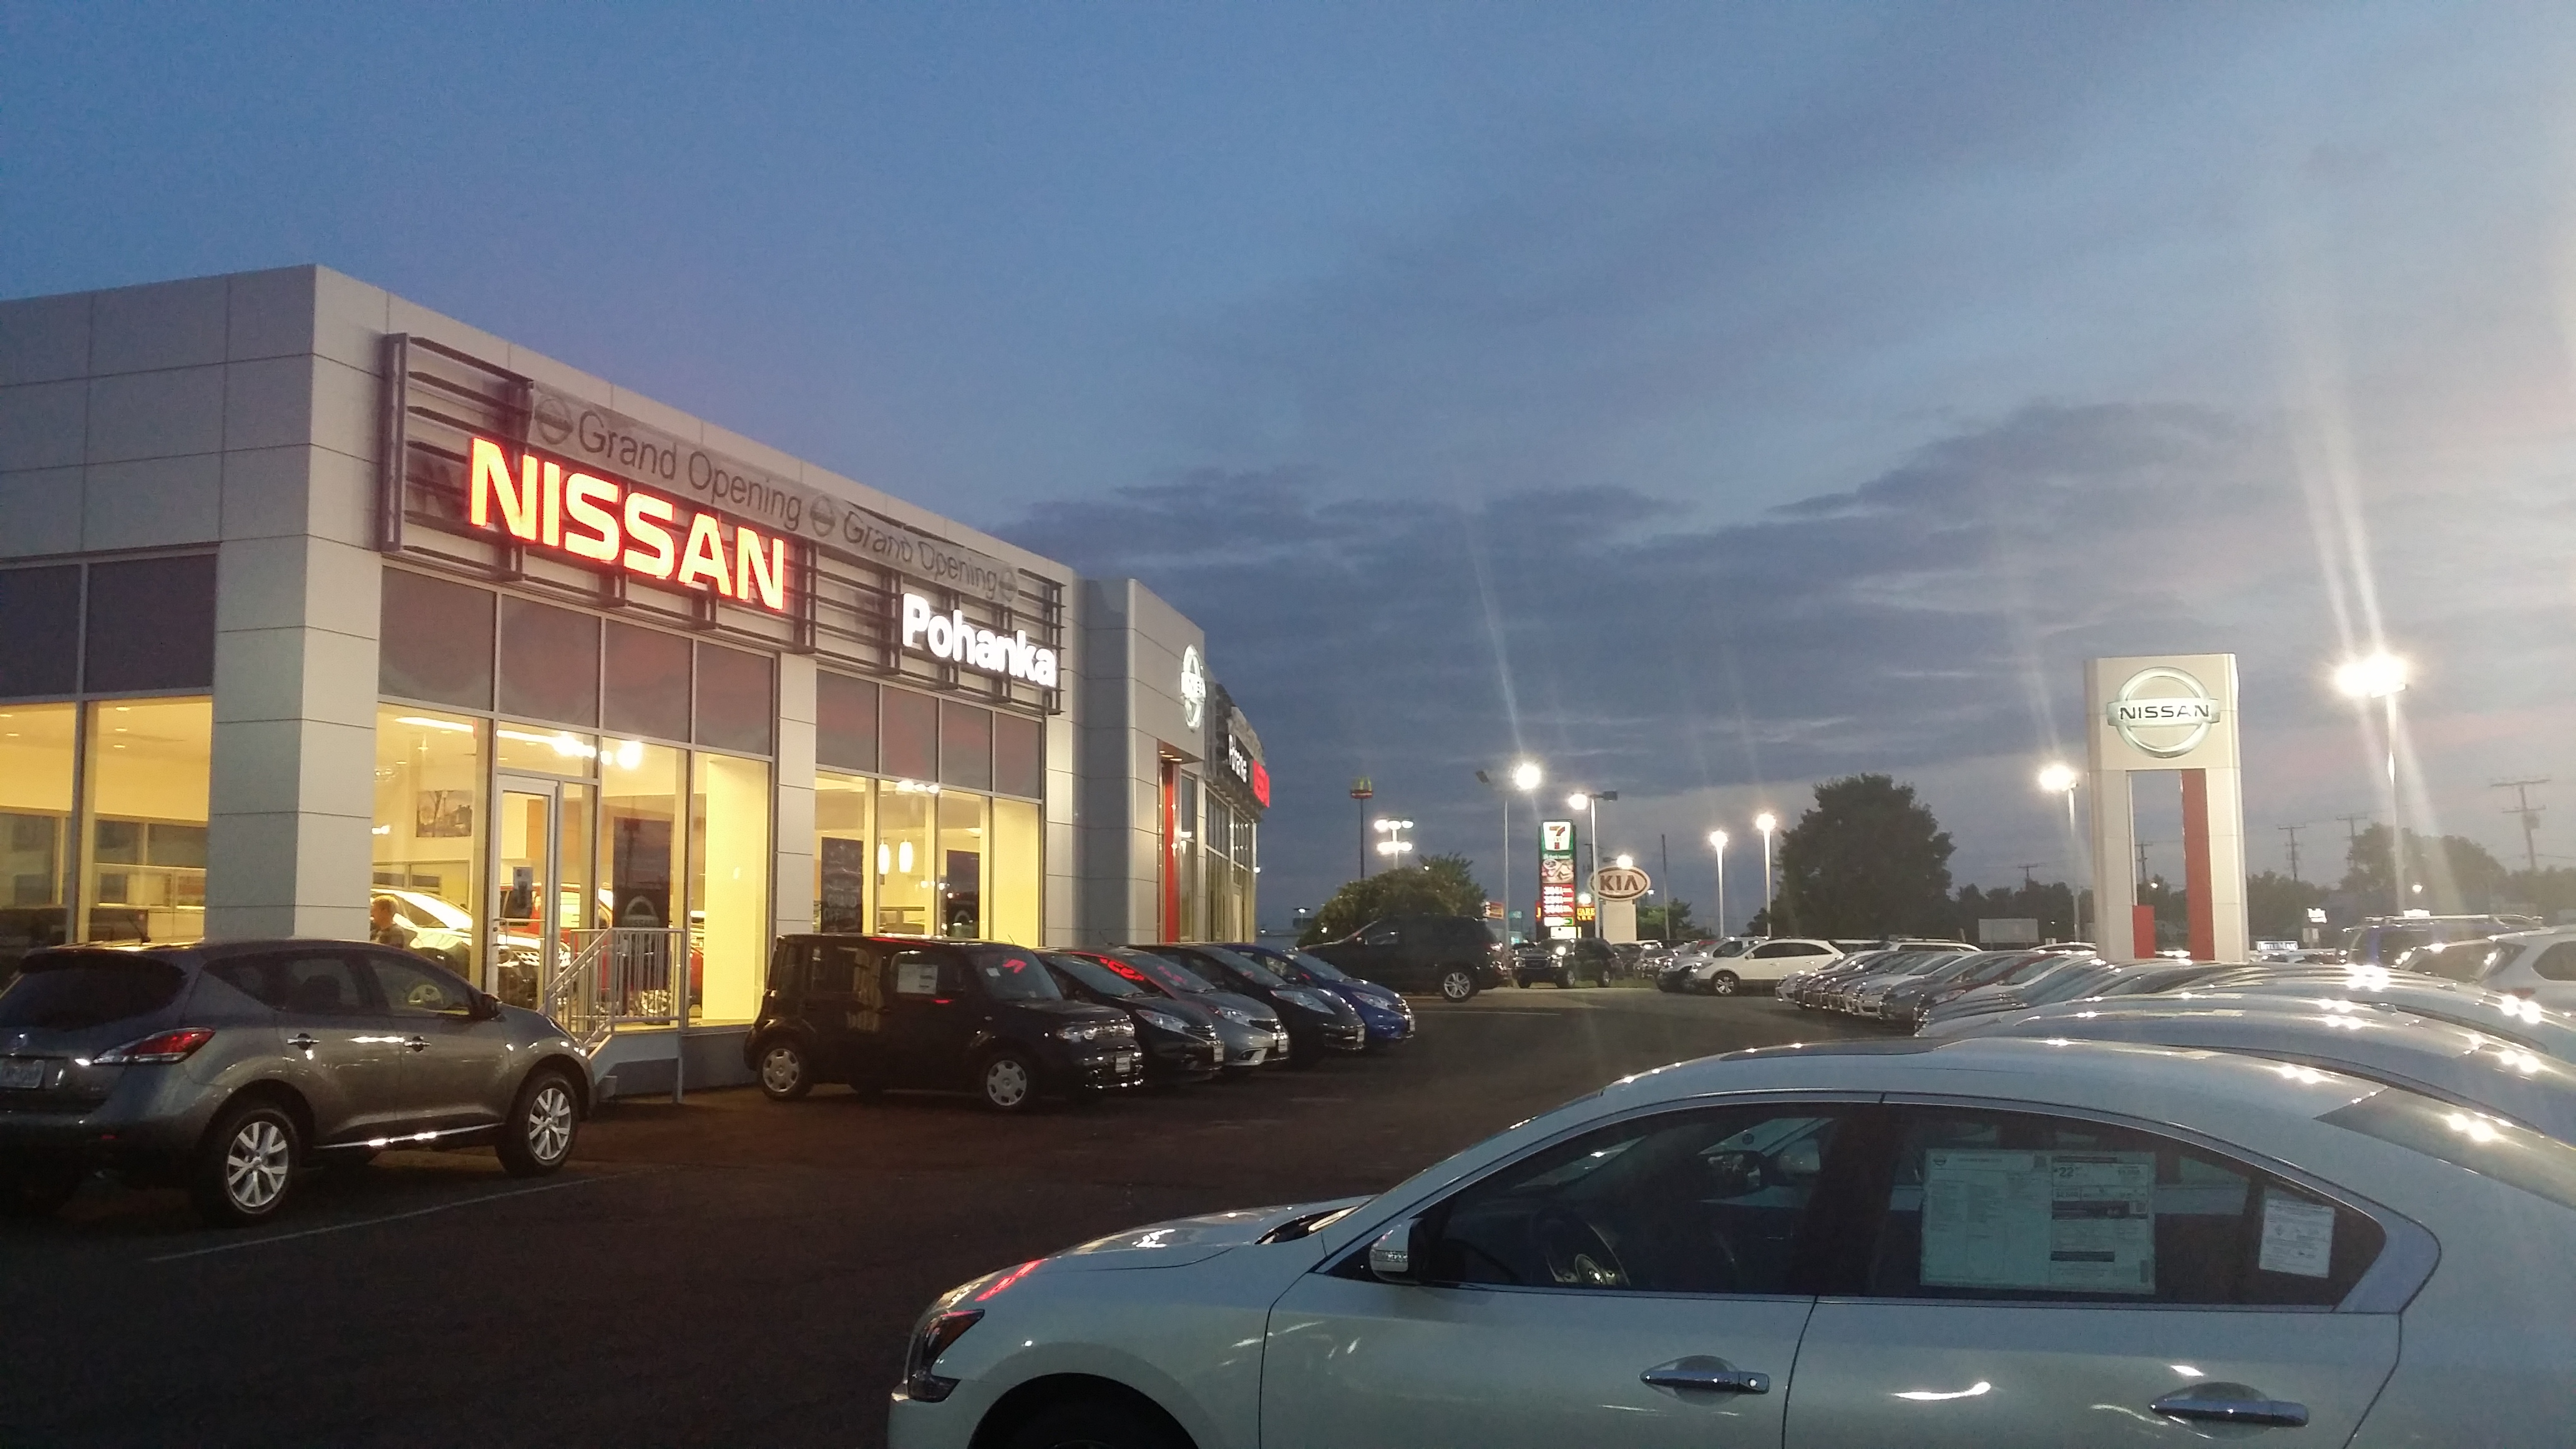 pohanka nissan of fredericksburg in fredericksburg va auto dealers yellow pages directory inc. Black Bedroom Furniture Sets. Home Design Ideas